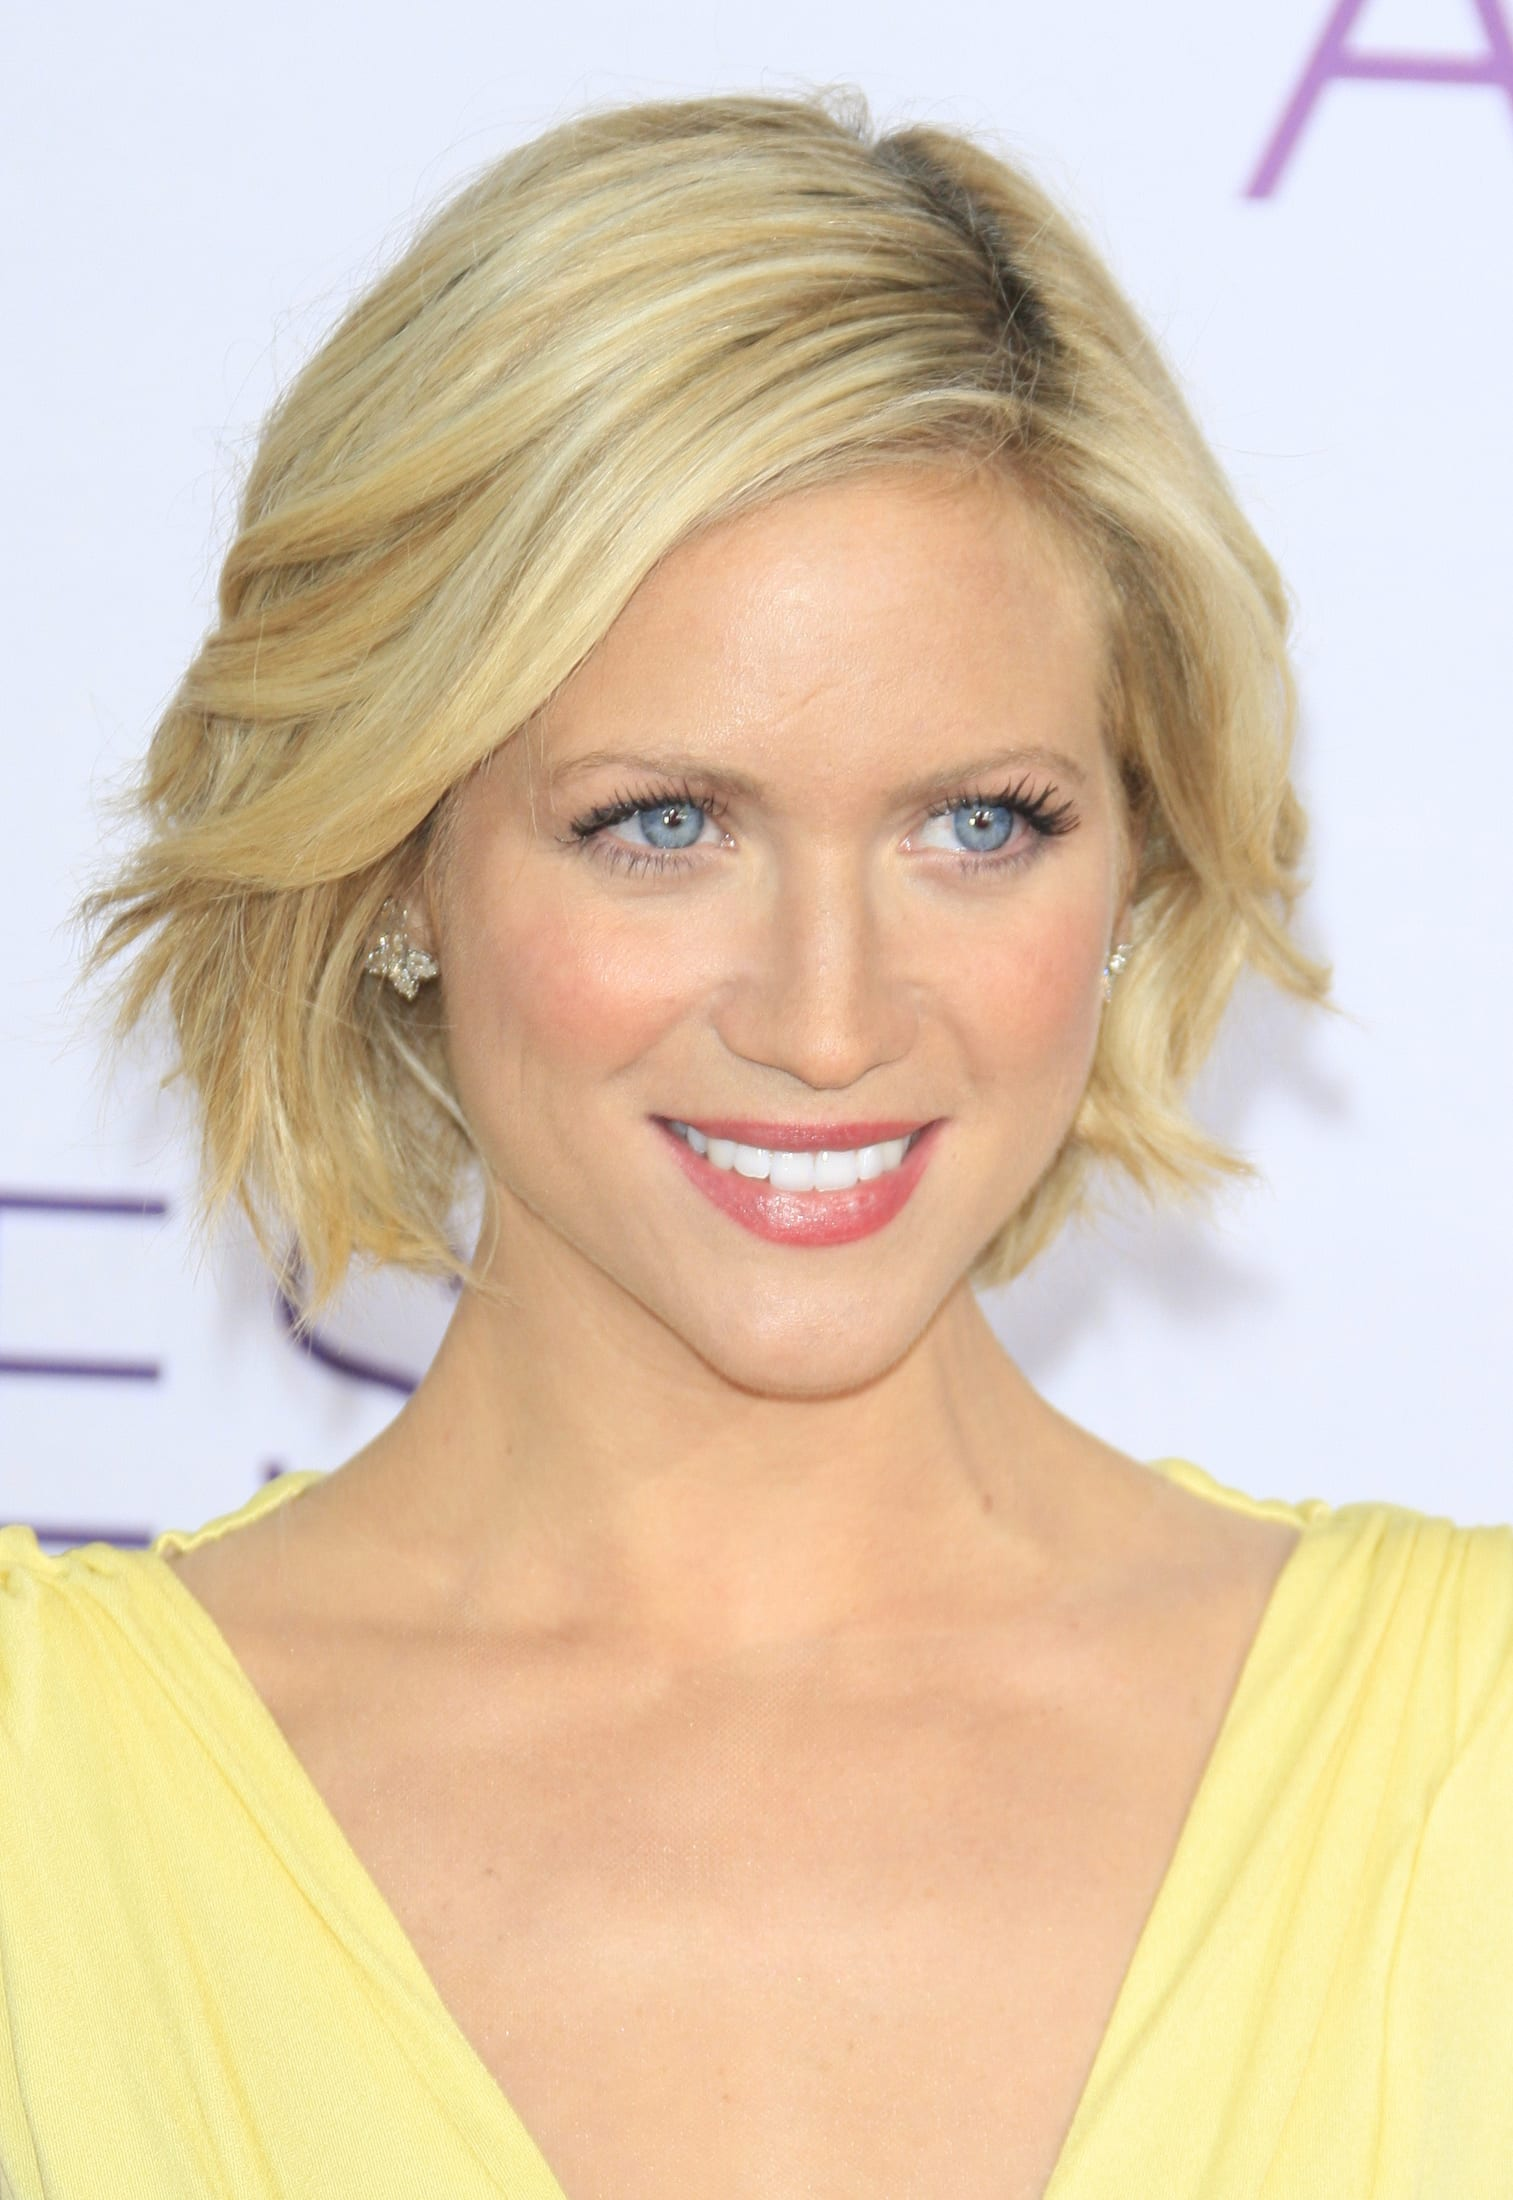 Brittany Snow's Mid-Part with Layered Bob